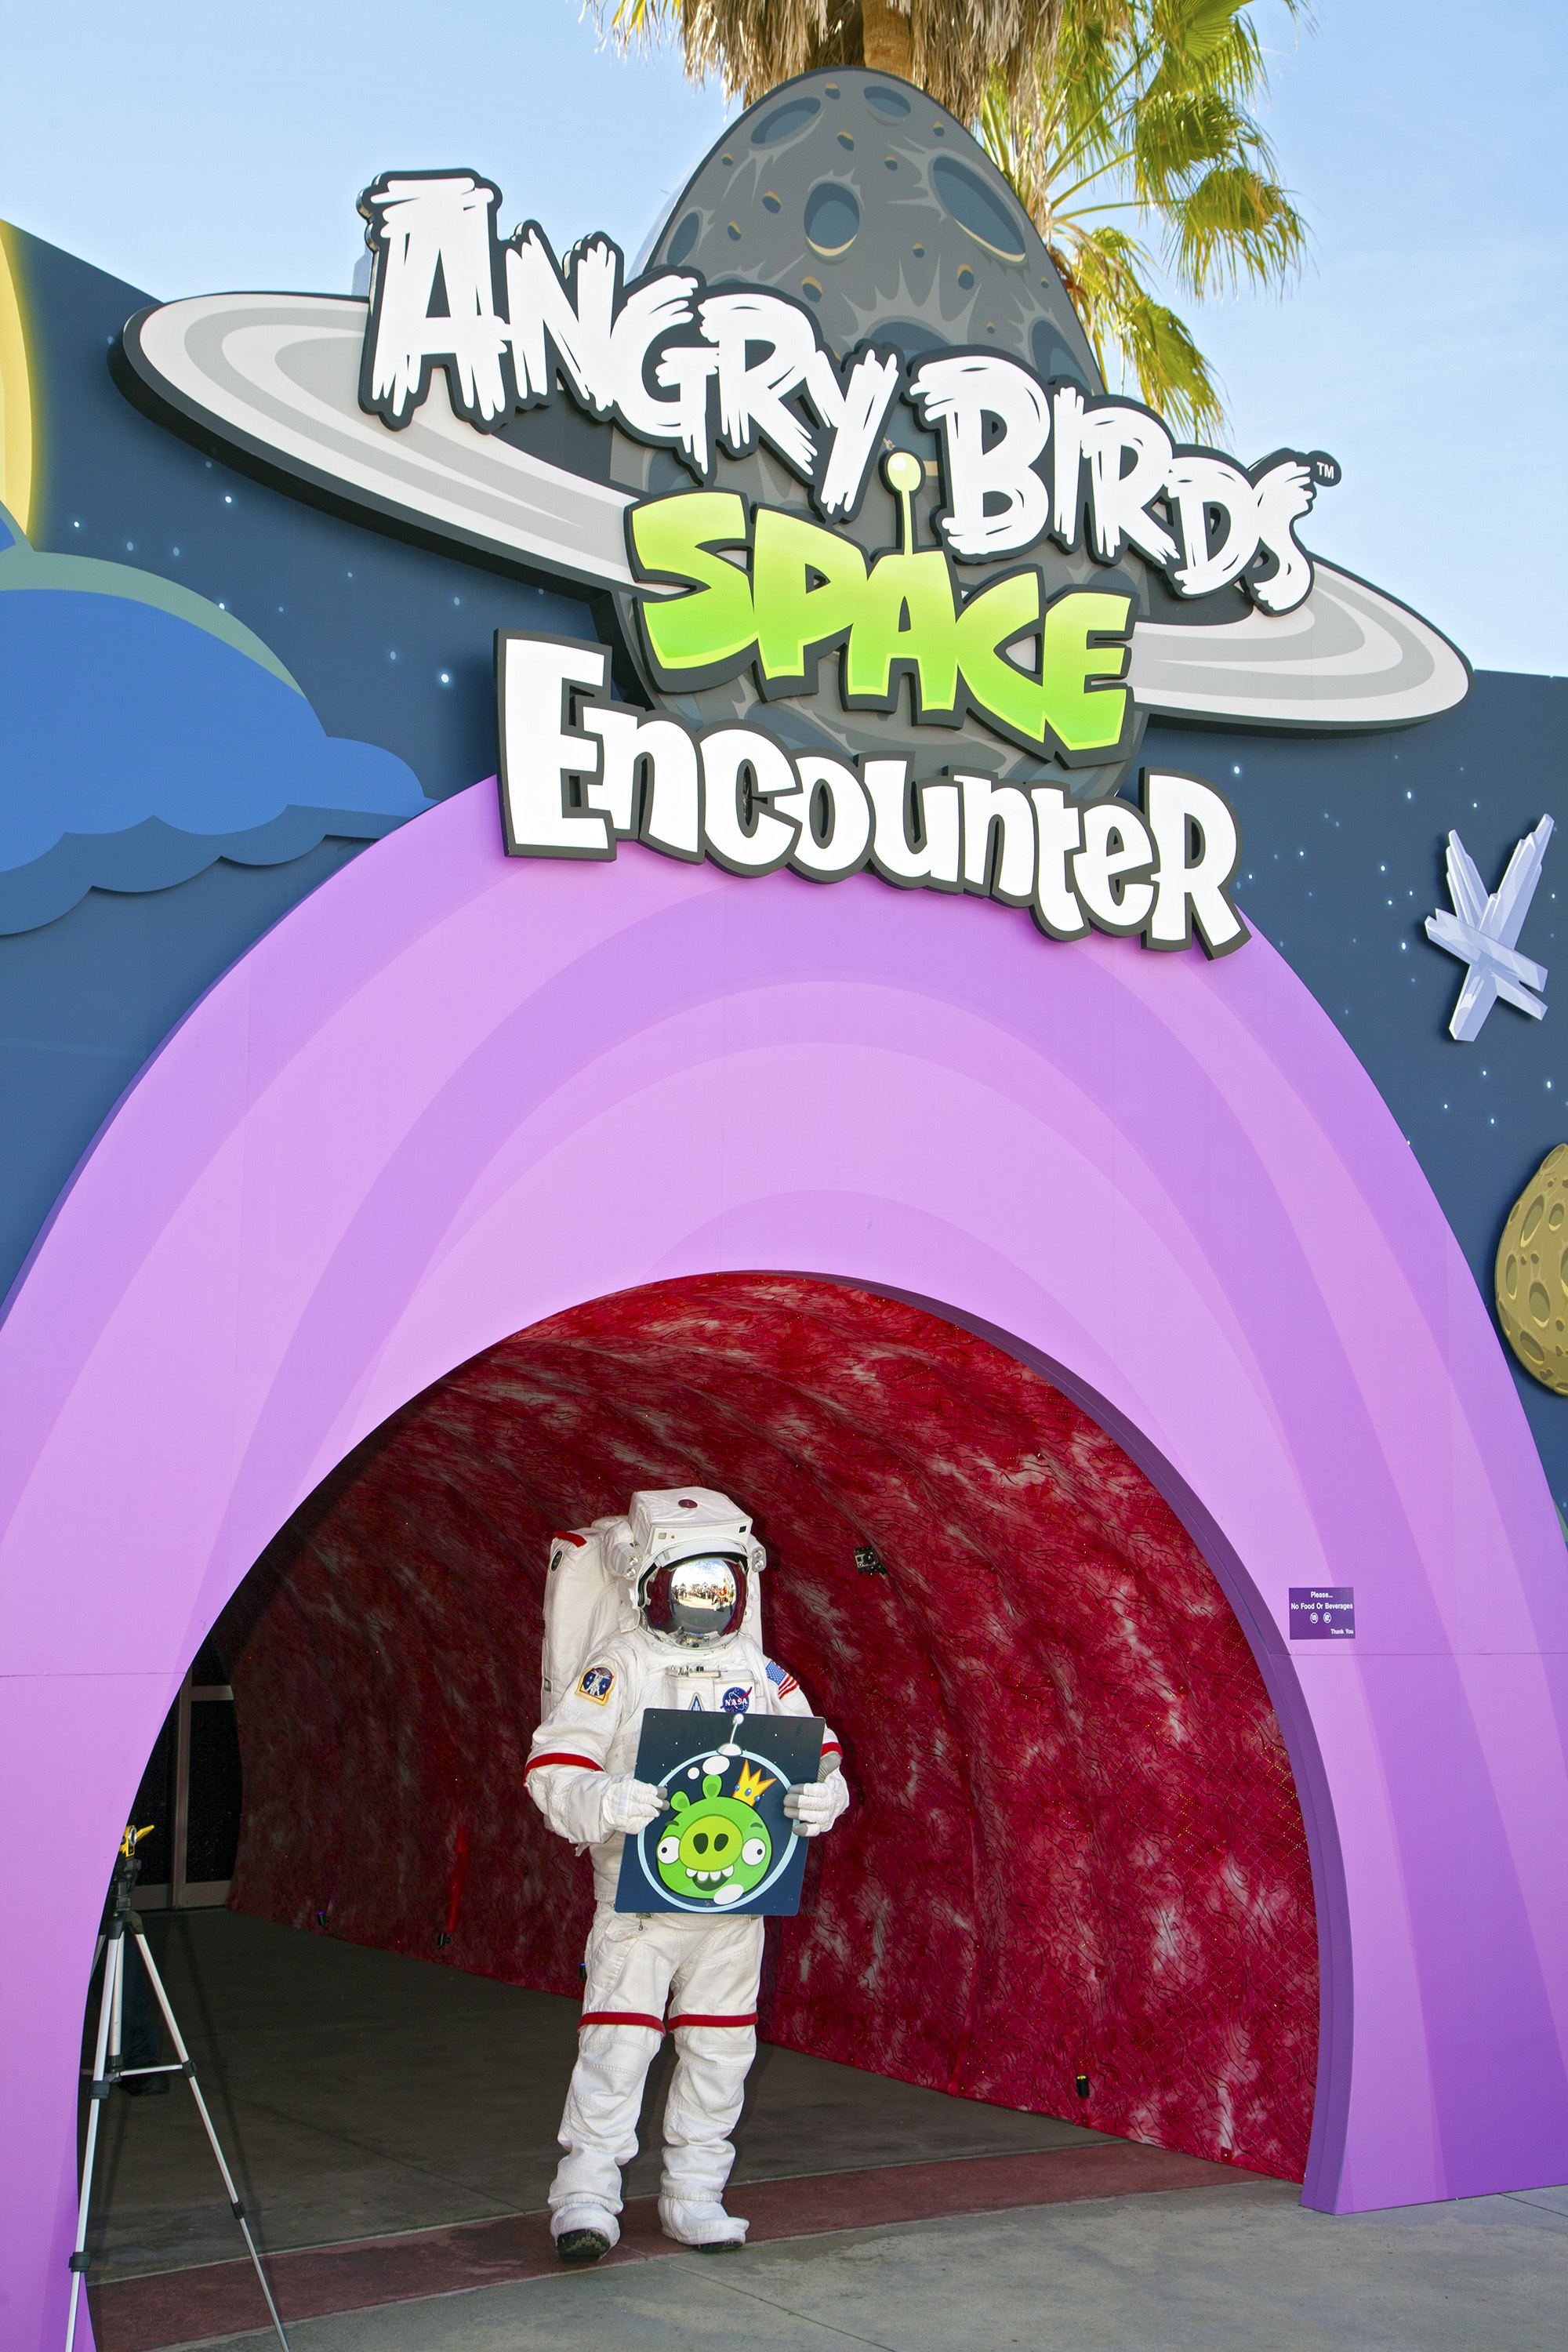 Spaceperson at Entrance to Angry Birds Space Encounter Exhibit